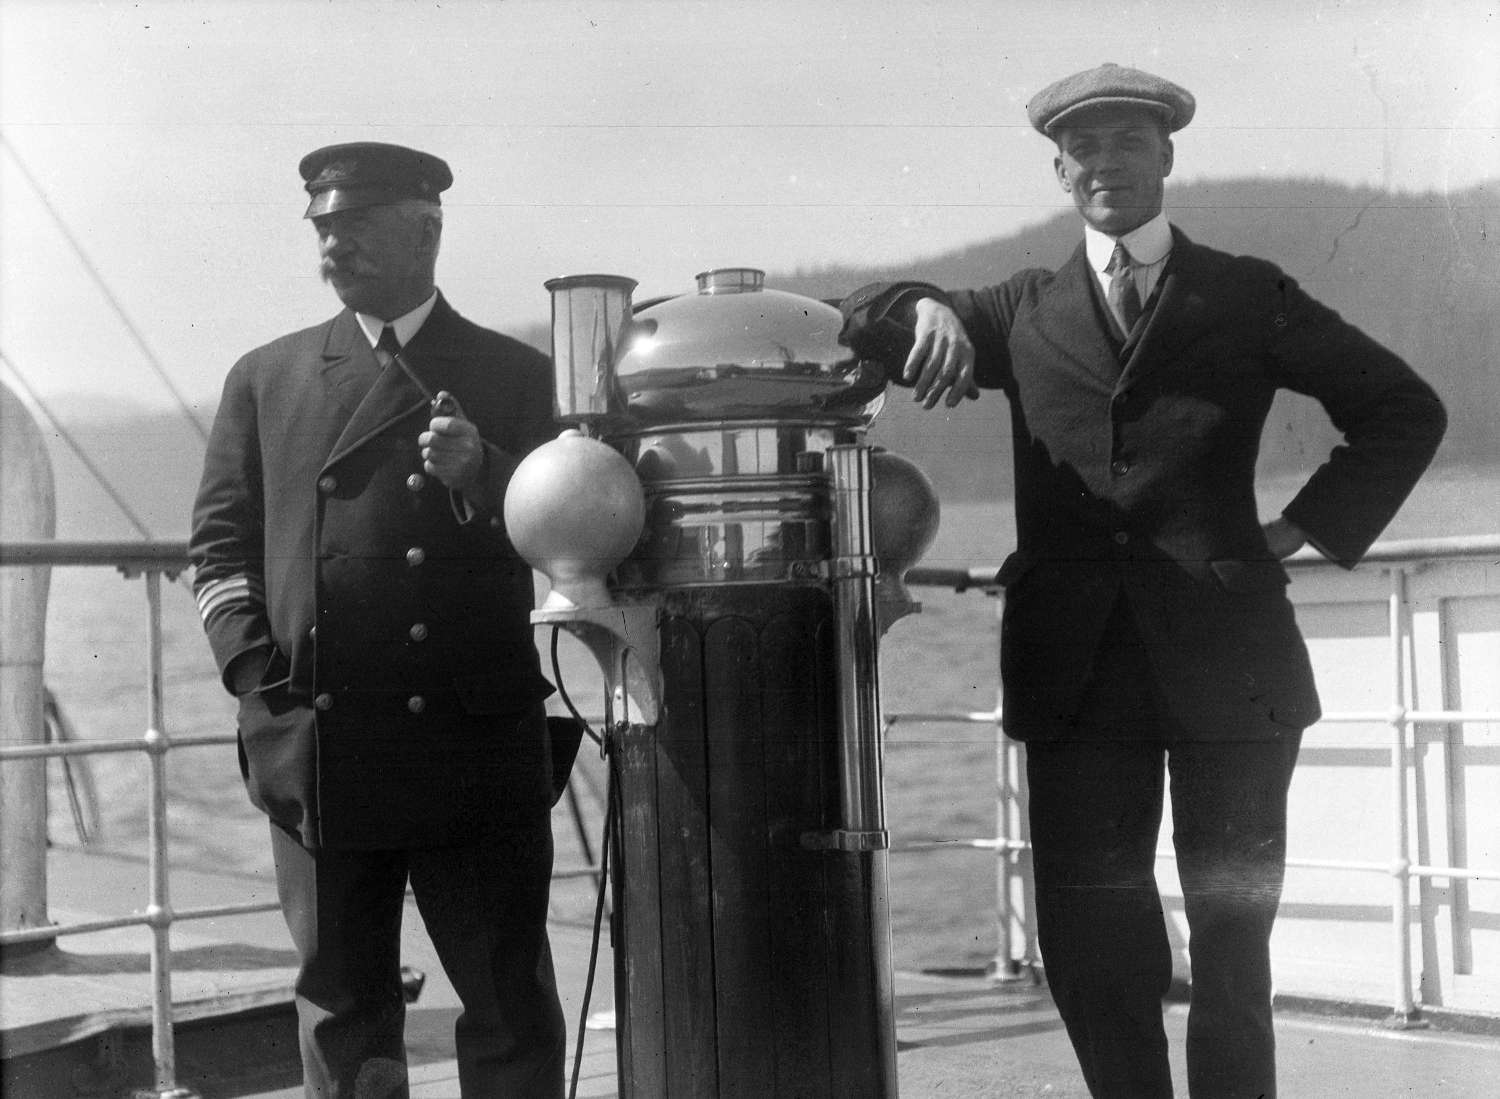 Captain Browne and Williams aboard S.S. Camosun, ~1918. Reference code AM640-: CVA 260-1090.